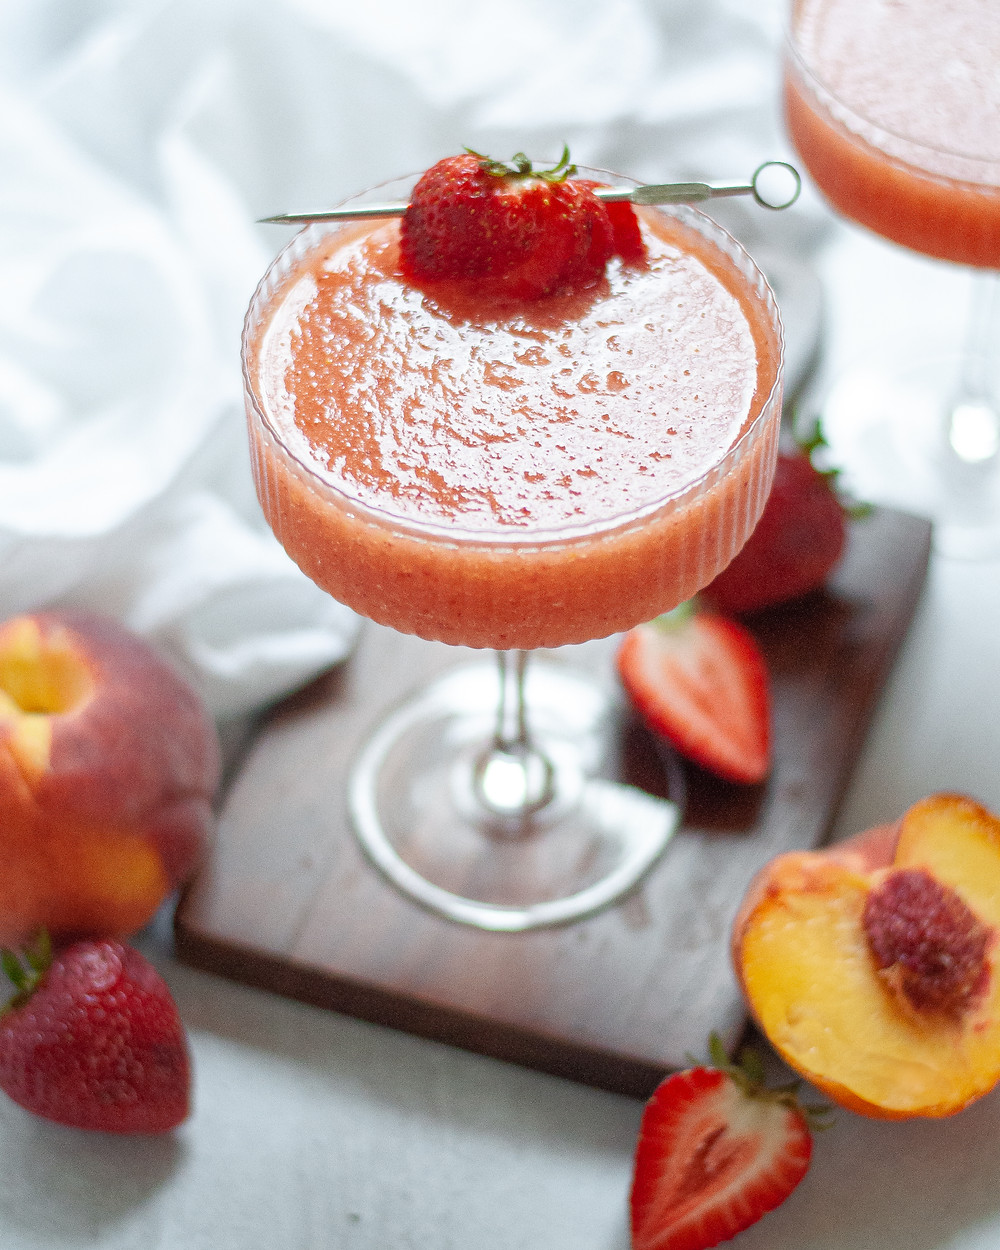 Coupe glass filled with this strawberry peach frose recipe. The glass is garnished with a sliced strawberry on a cocktail stick and it is sitting on a dark wooden board. The wine cocktail is surrounded by fresh fruit, a white napkin, and another cocktail is peaking into the top corner of the picture.